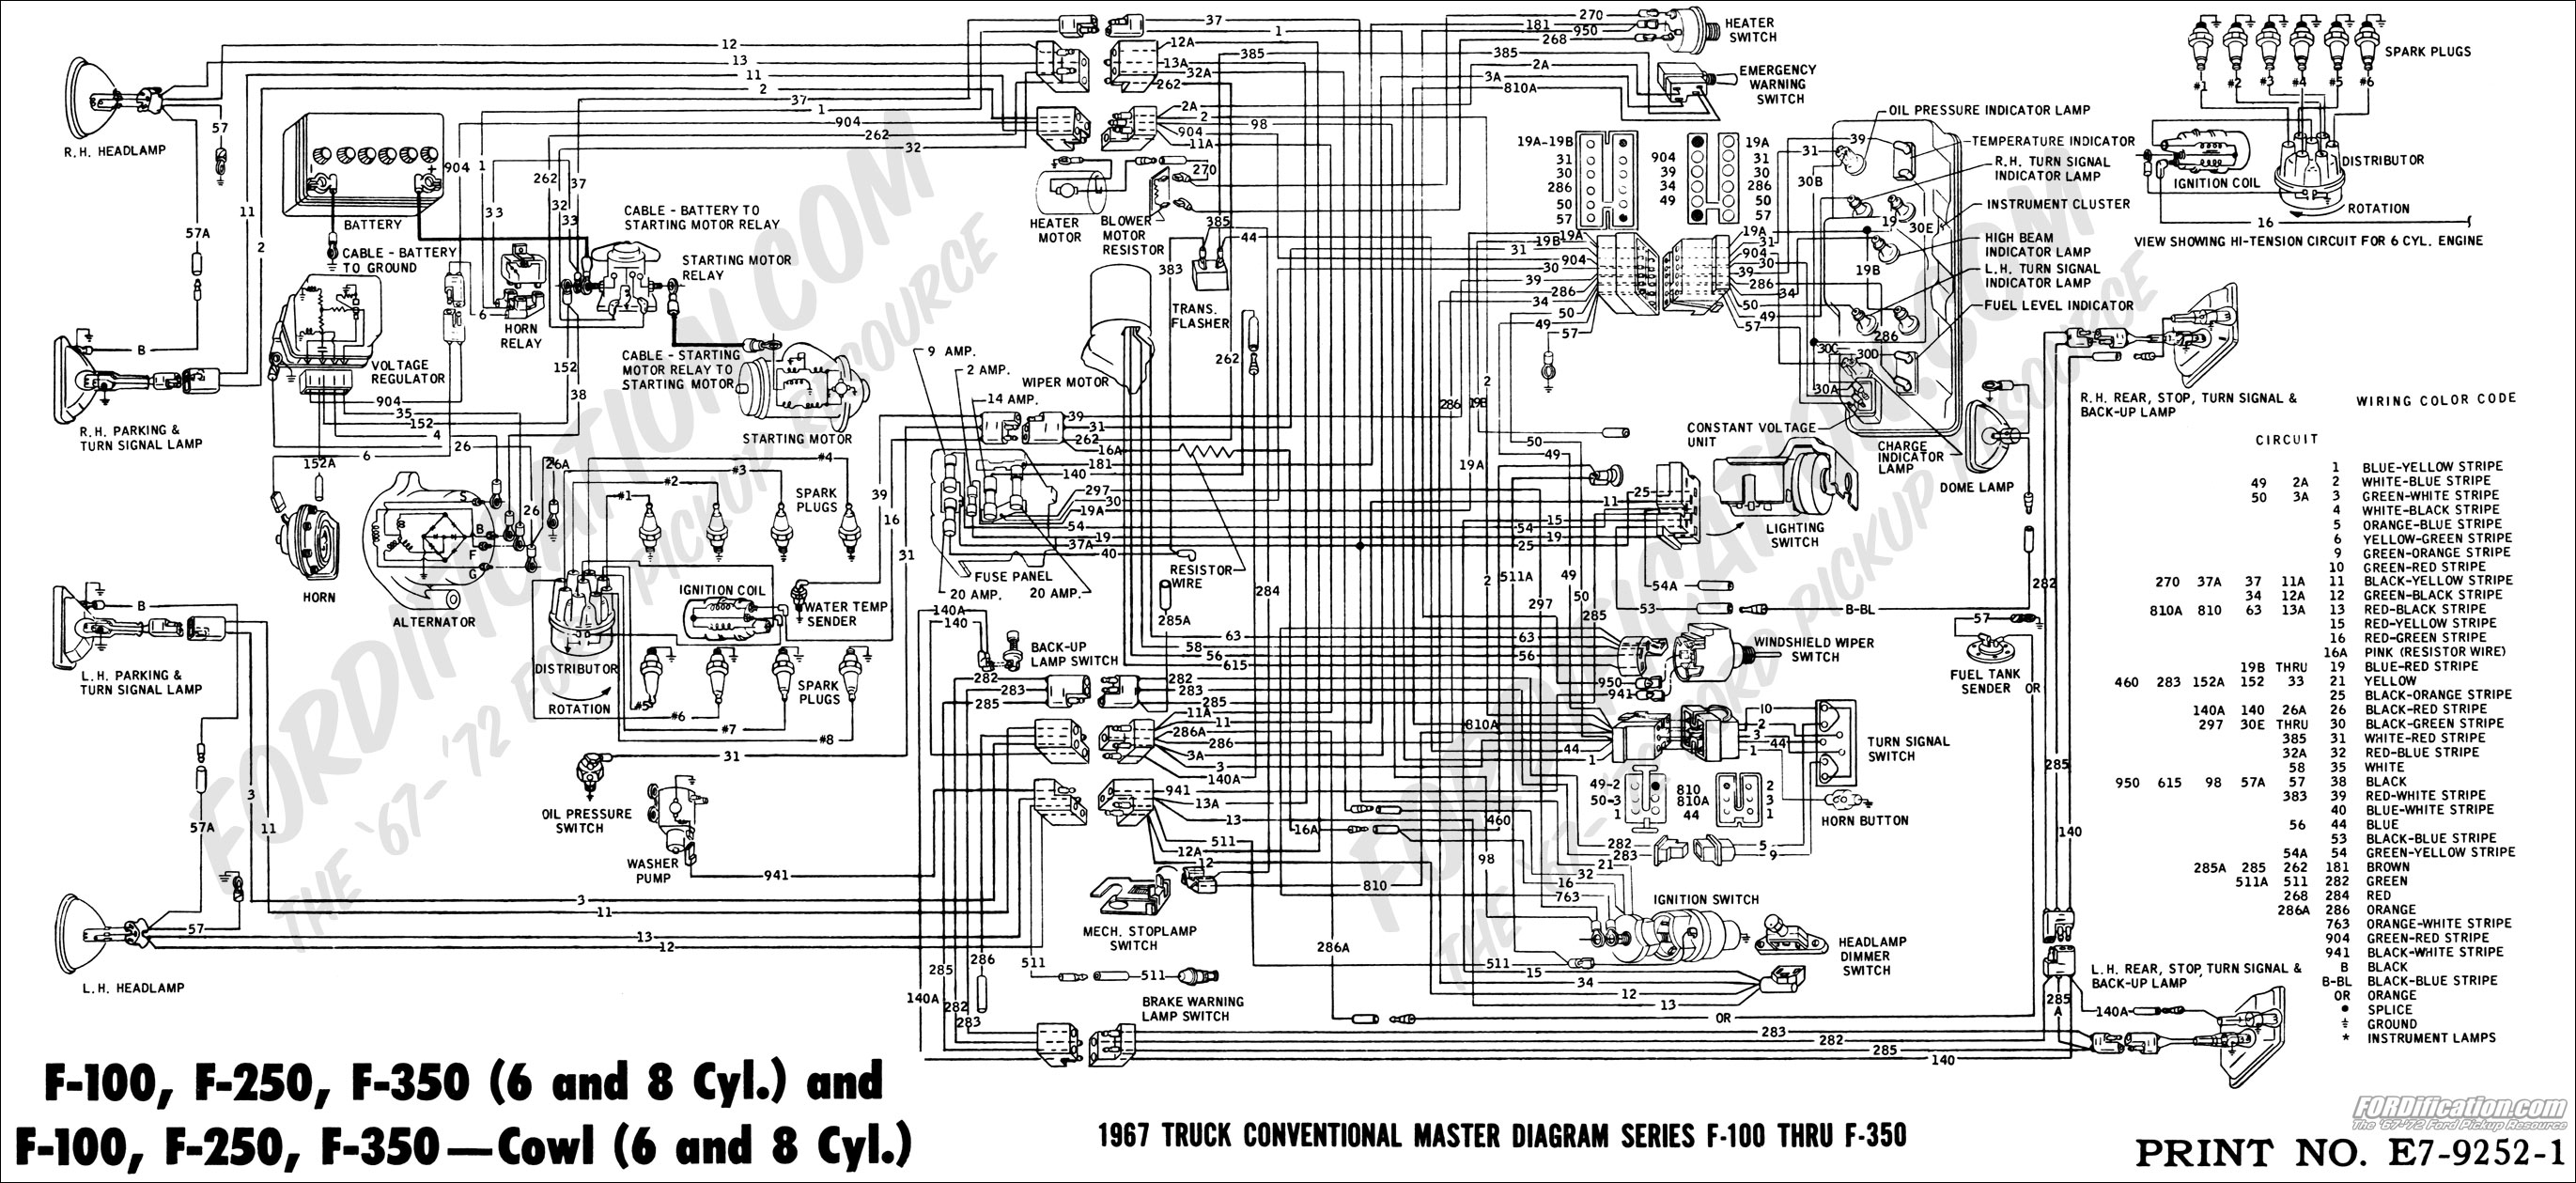 67masterdiagram ford truck technical drawings and schematics section h wiring 1994 ford f150 ignition switch wiring diagram at n-0.co